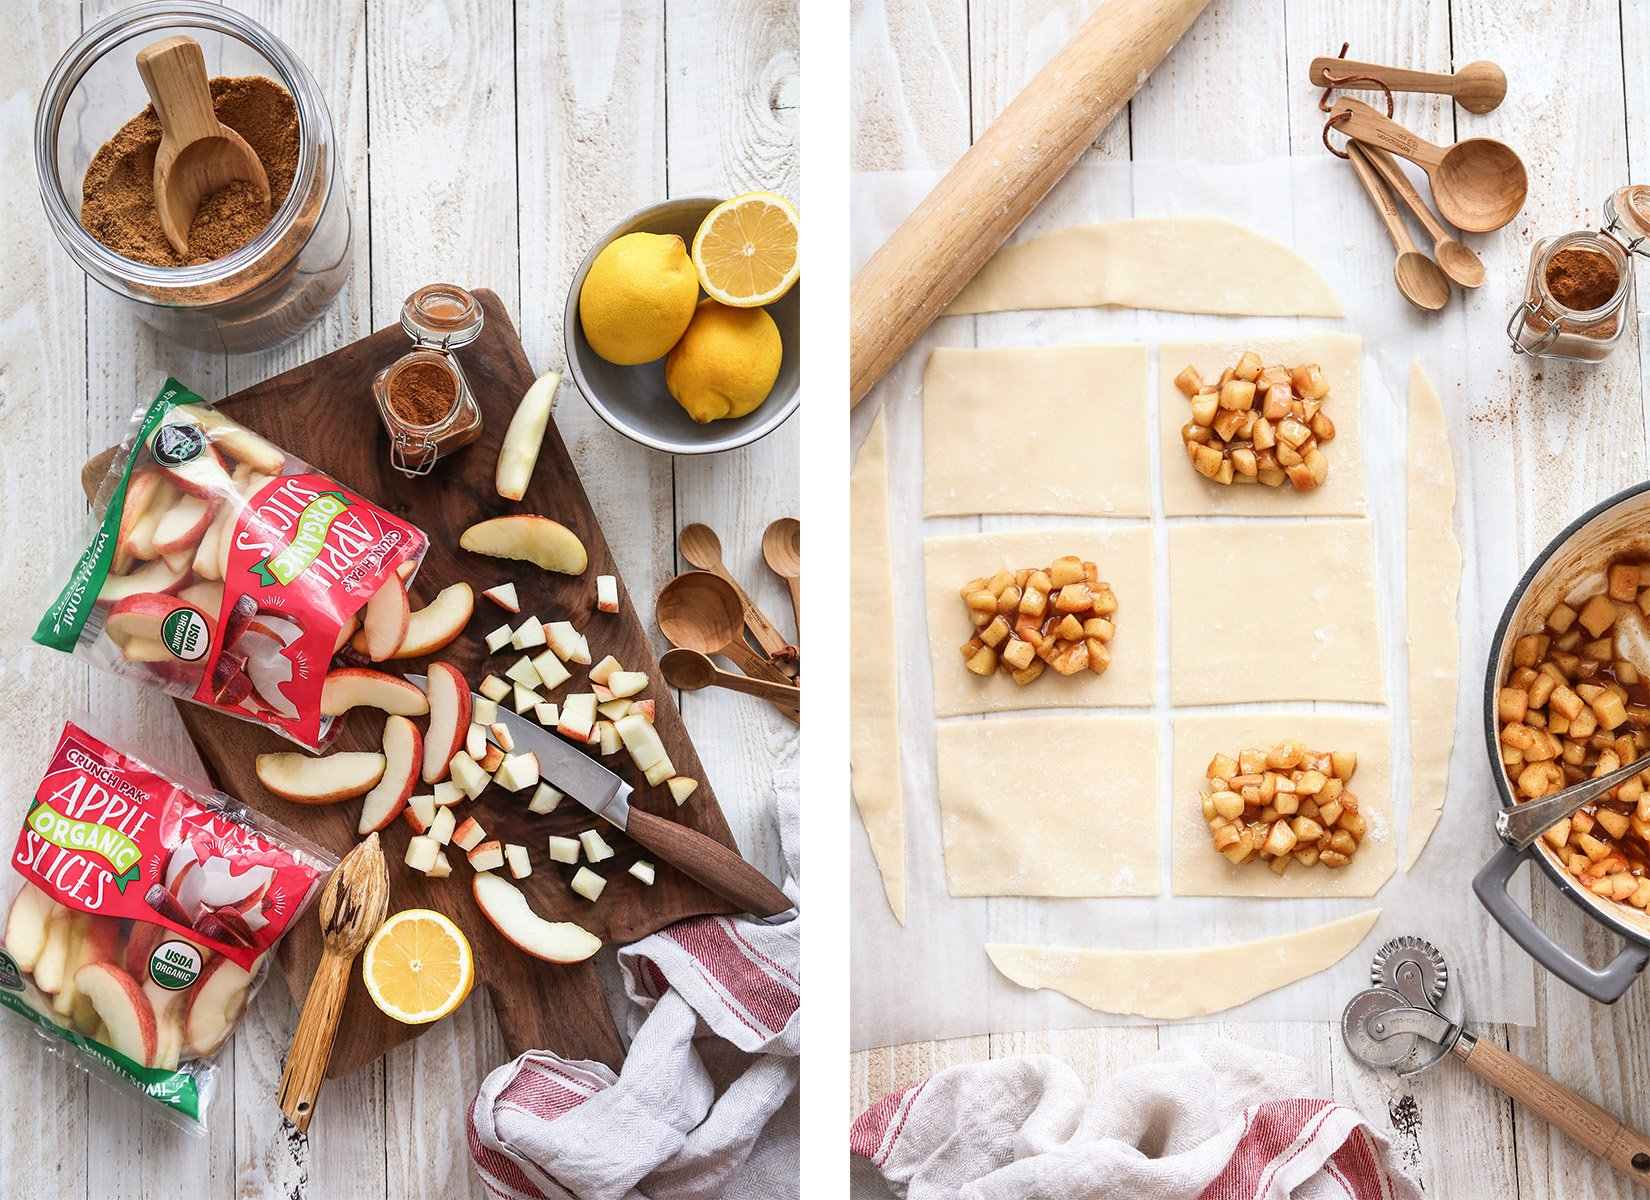 Apple Pie Pop Tarts | Vegan friendly with gluten free and refined sugar free option